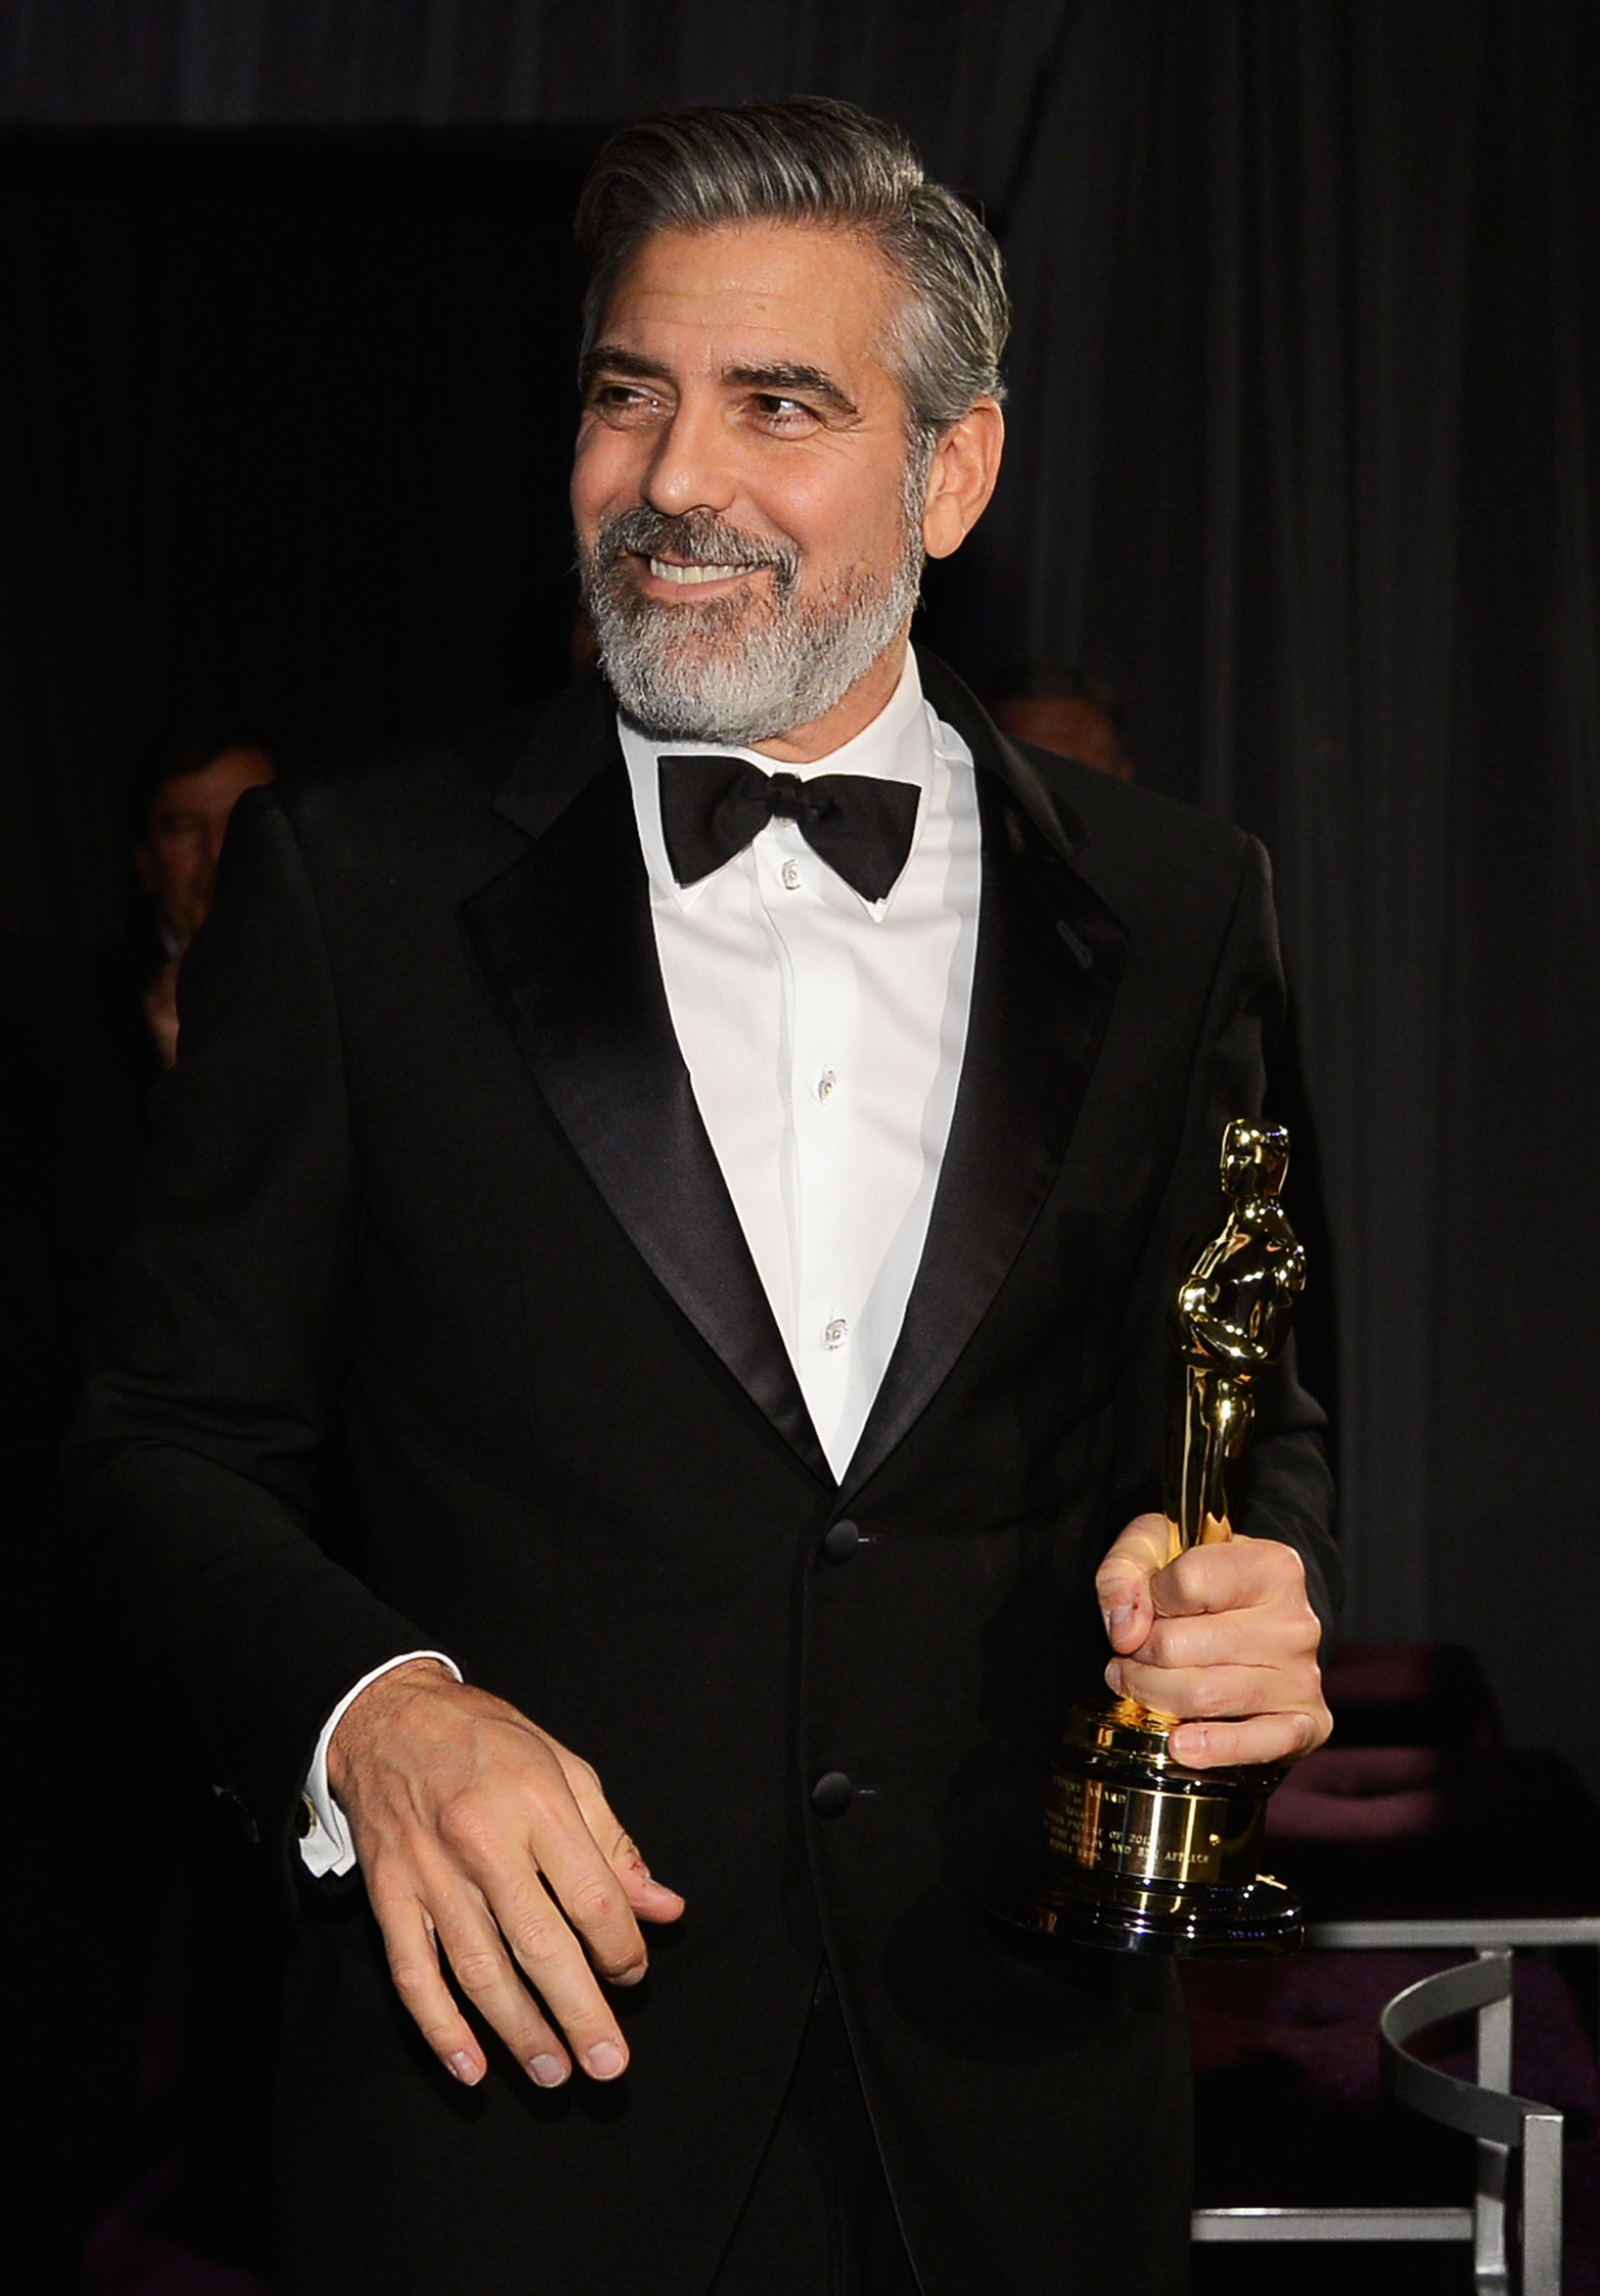 George Clooney had a smile on his face at the Governors Ball.